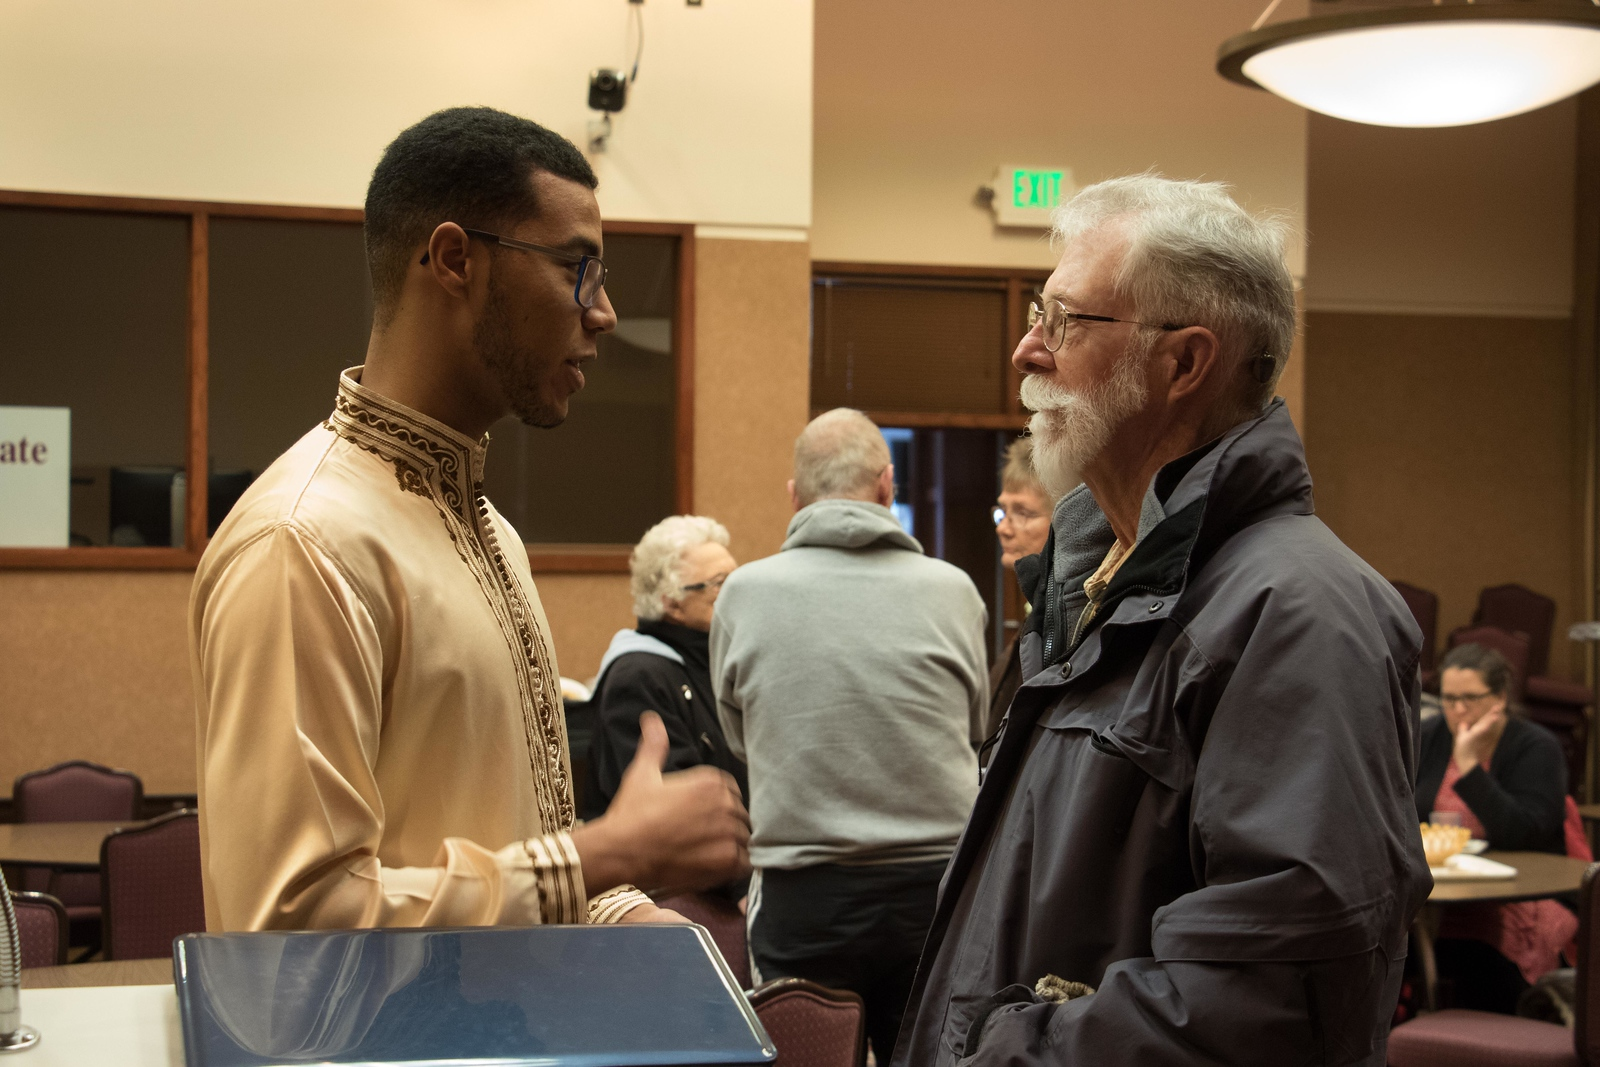 Chadron State College student Anas Haddadi, left, speaks with retired CSC professor Dr. Jim O'Rourke in the Student Center Thursday, Feb. 22, 2018, following Haddadi's presentation about his home country of Morocco during Dine With Us, a lunch series sponsored by the office of International Affairs. (Photo by Tena L. Cook/Chadron State College)